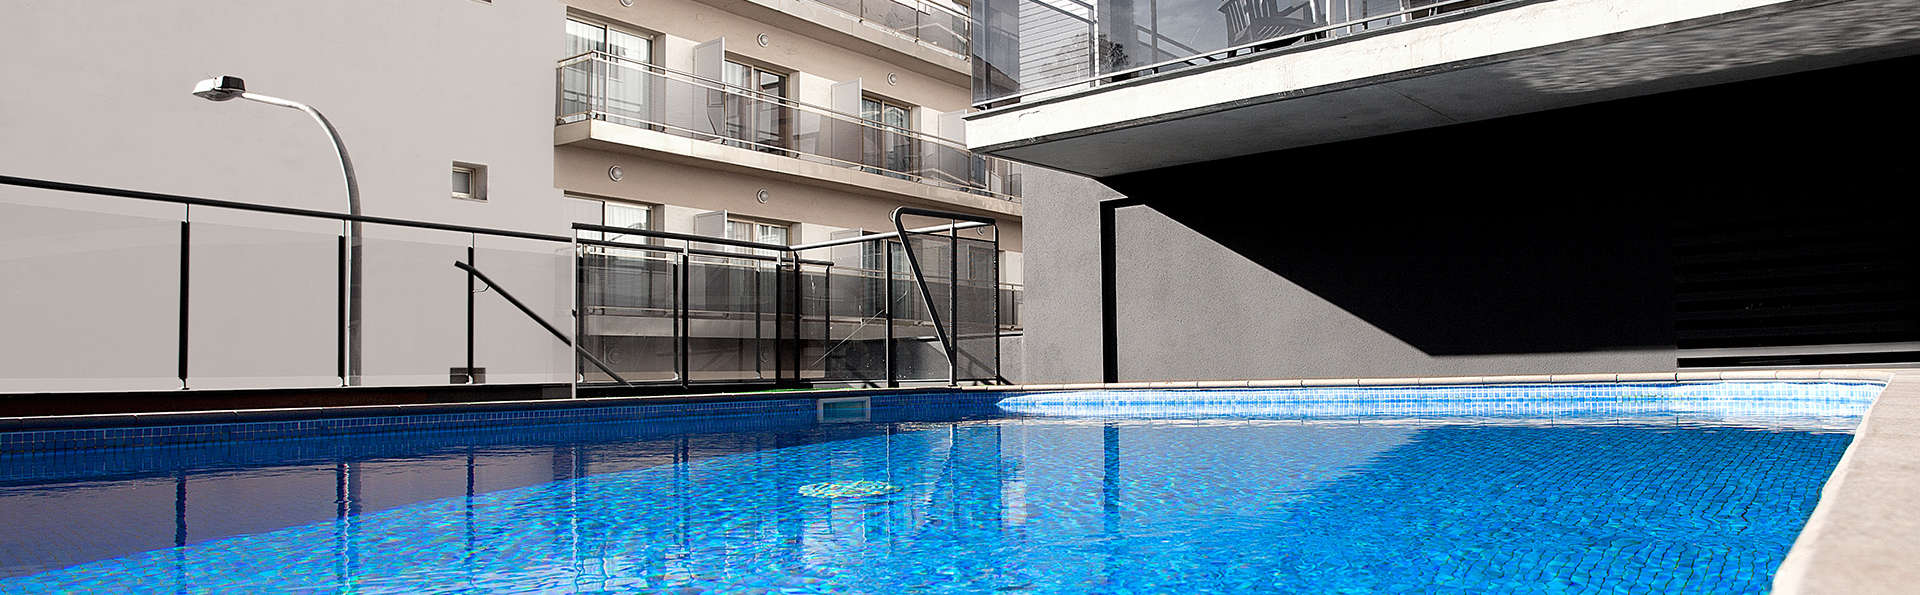 Acacias Suites y Spa - edit_Outdoor-Swimming-Pool-Hotel-Acacias-Suites-_-Spa-Lloret-de-Mar-_1_.jpg